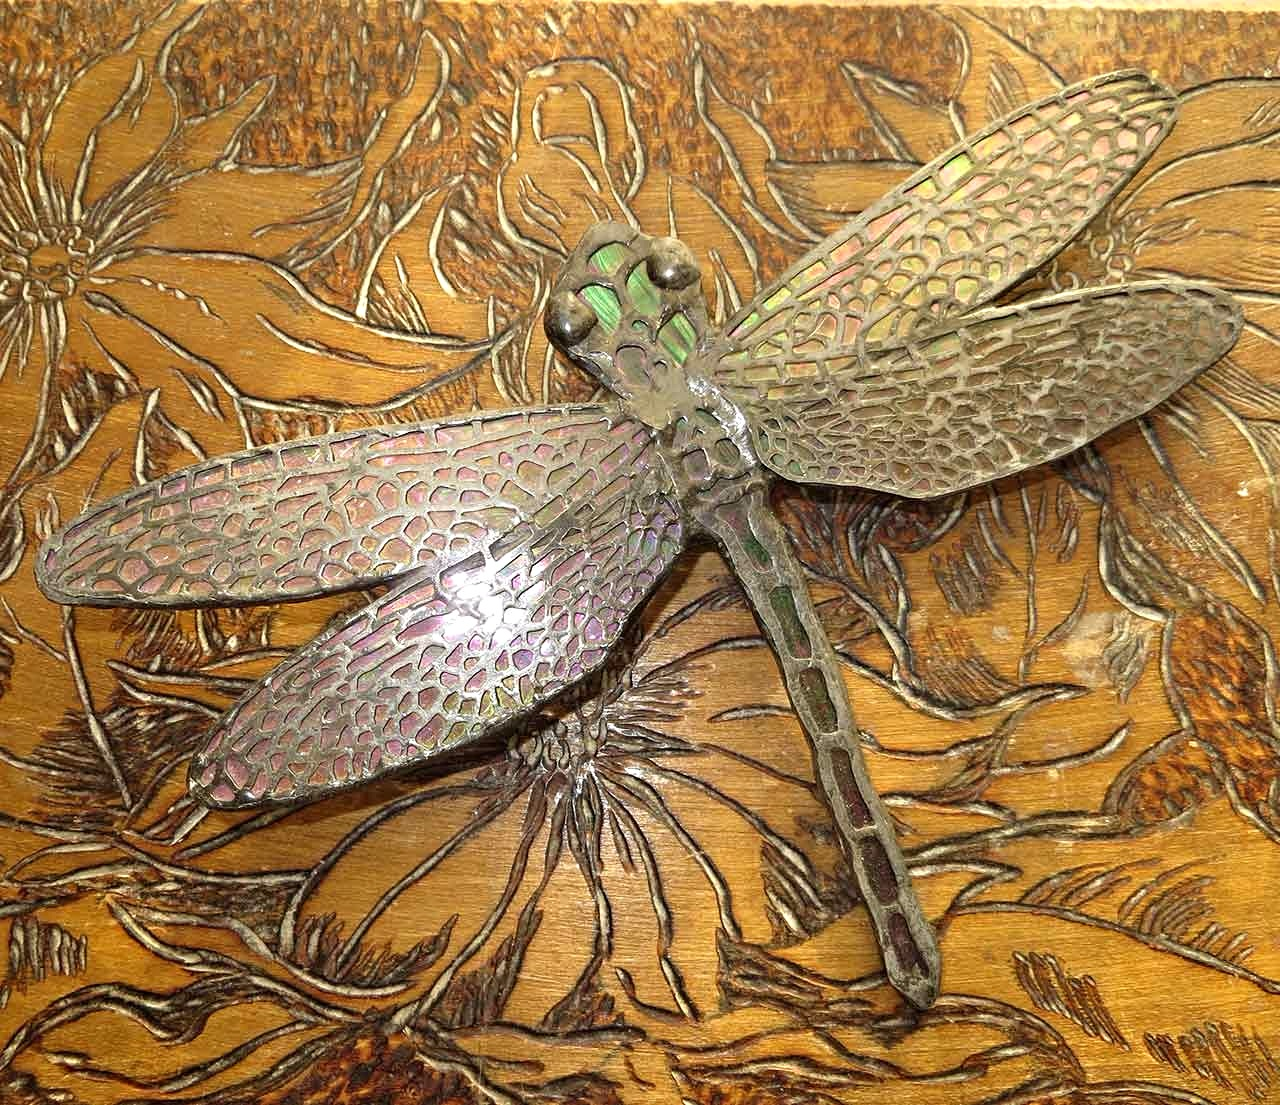 Dragon fly with brass filigree